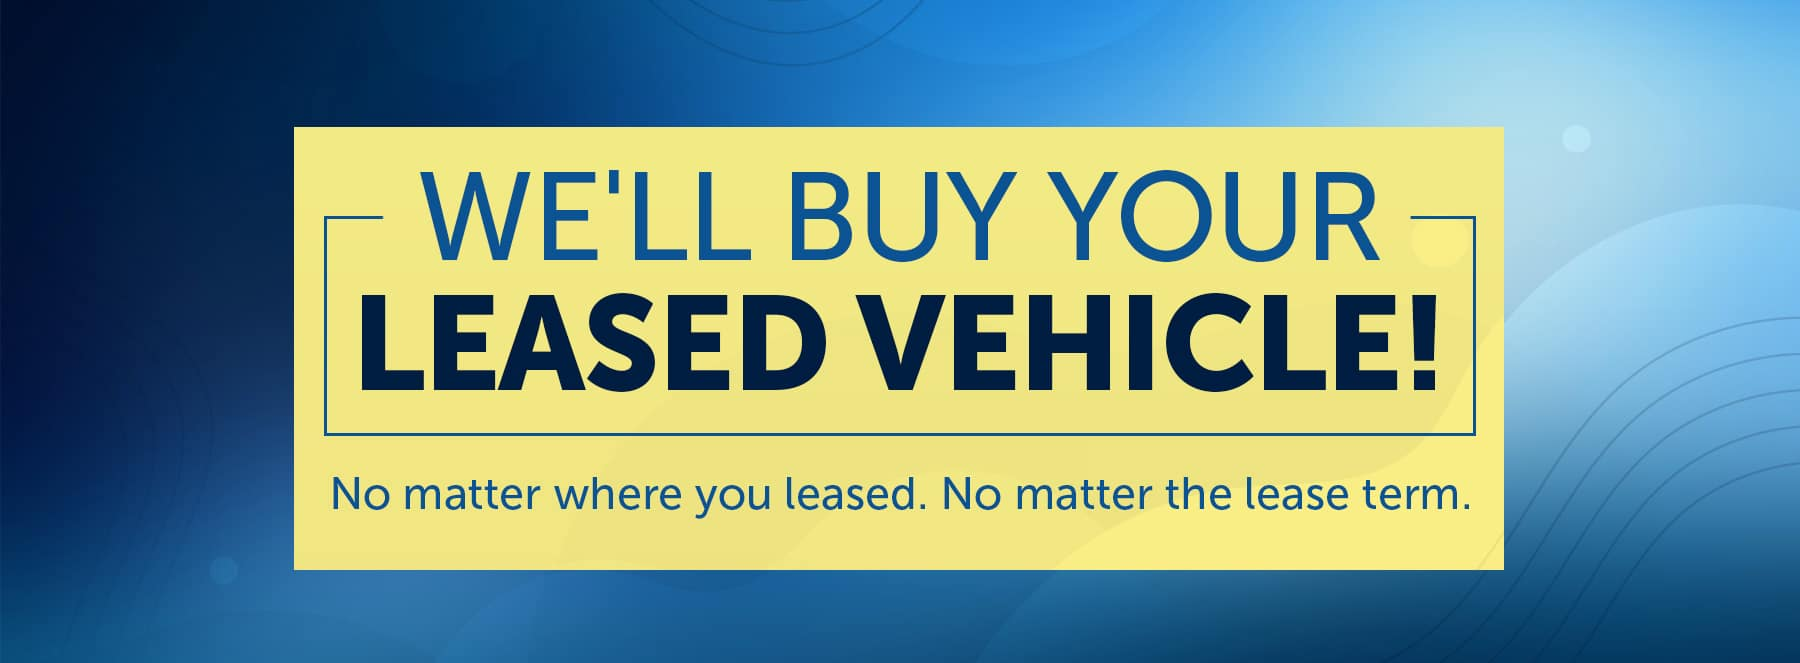 We Will Buy Your Leased Vehicle!